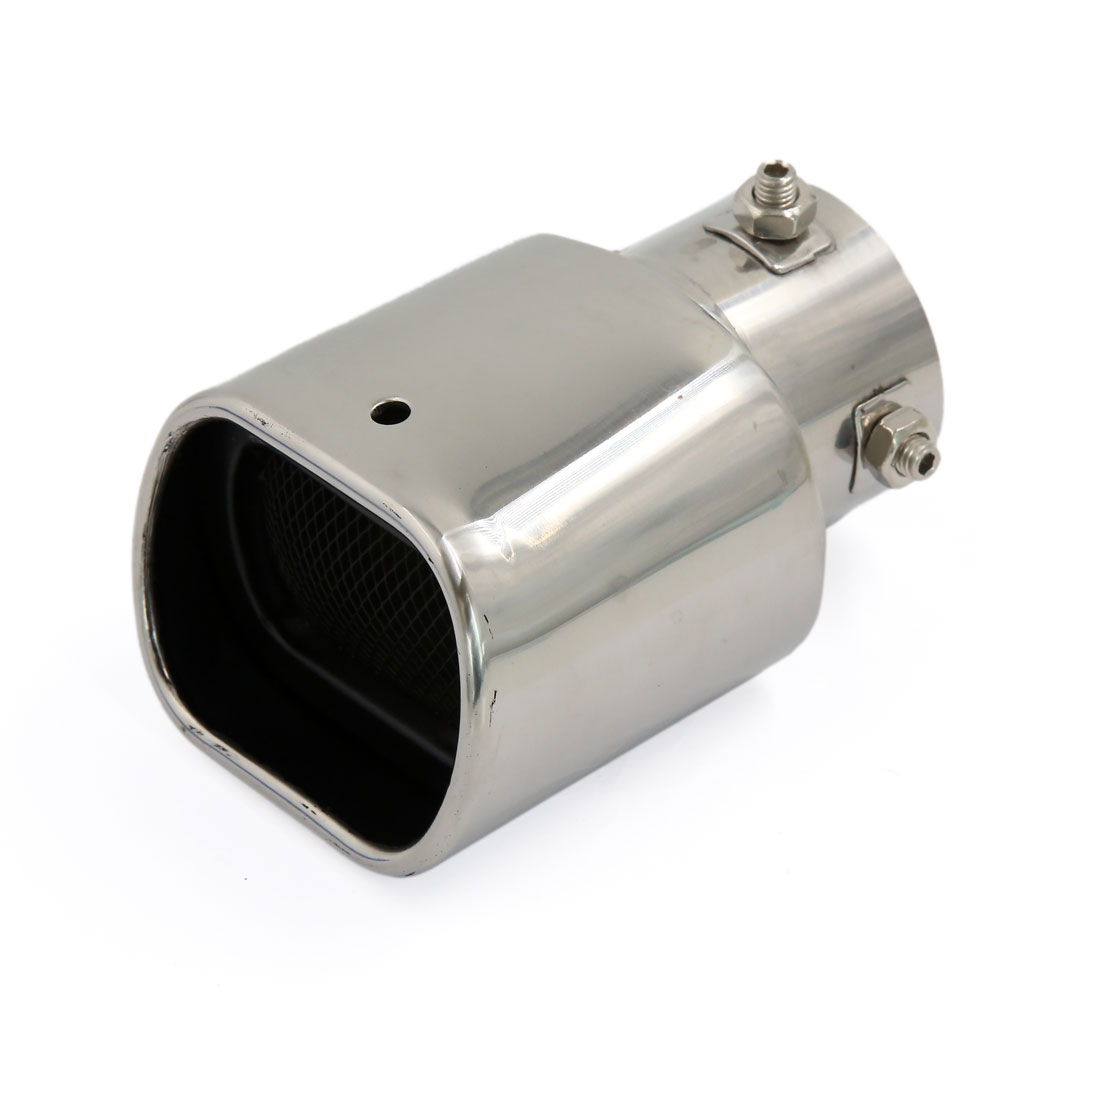 Silver Tone Modified Silencer Exhaust Muffler Tip Pipe for Vehicle Car